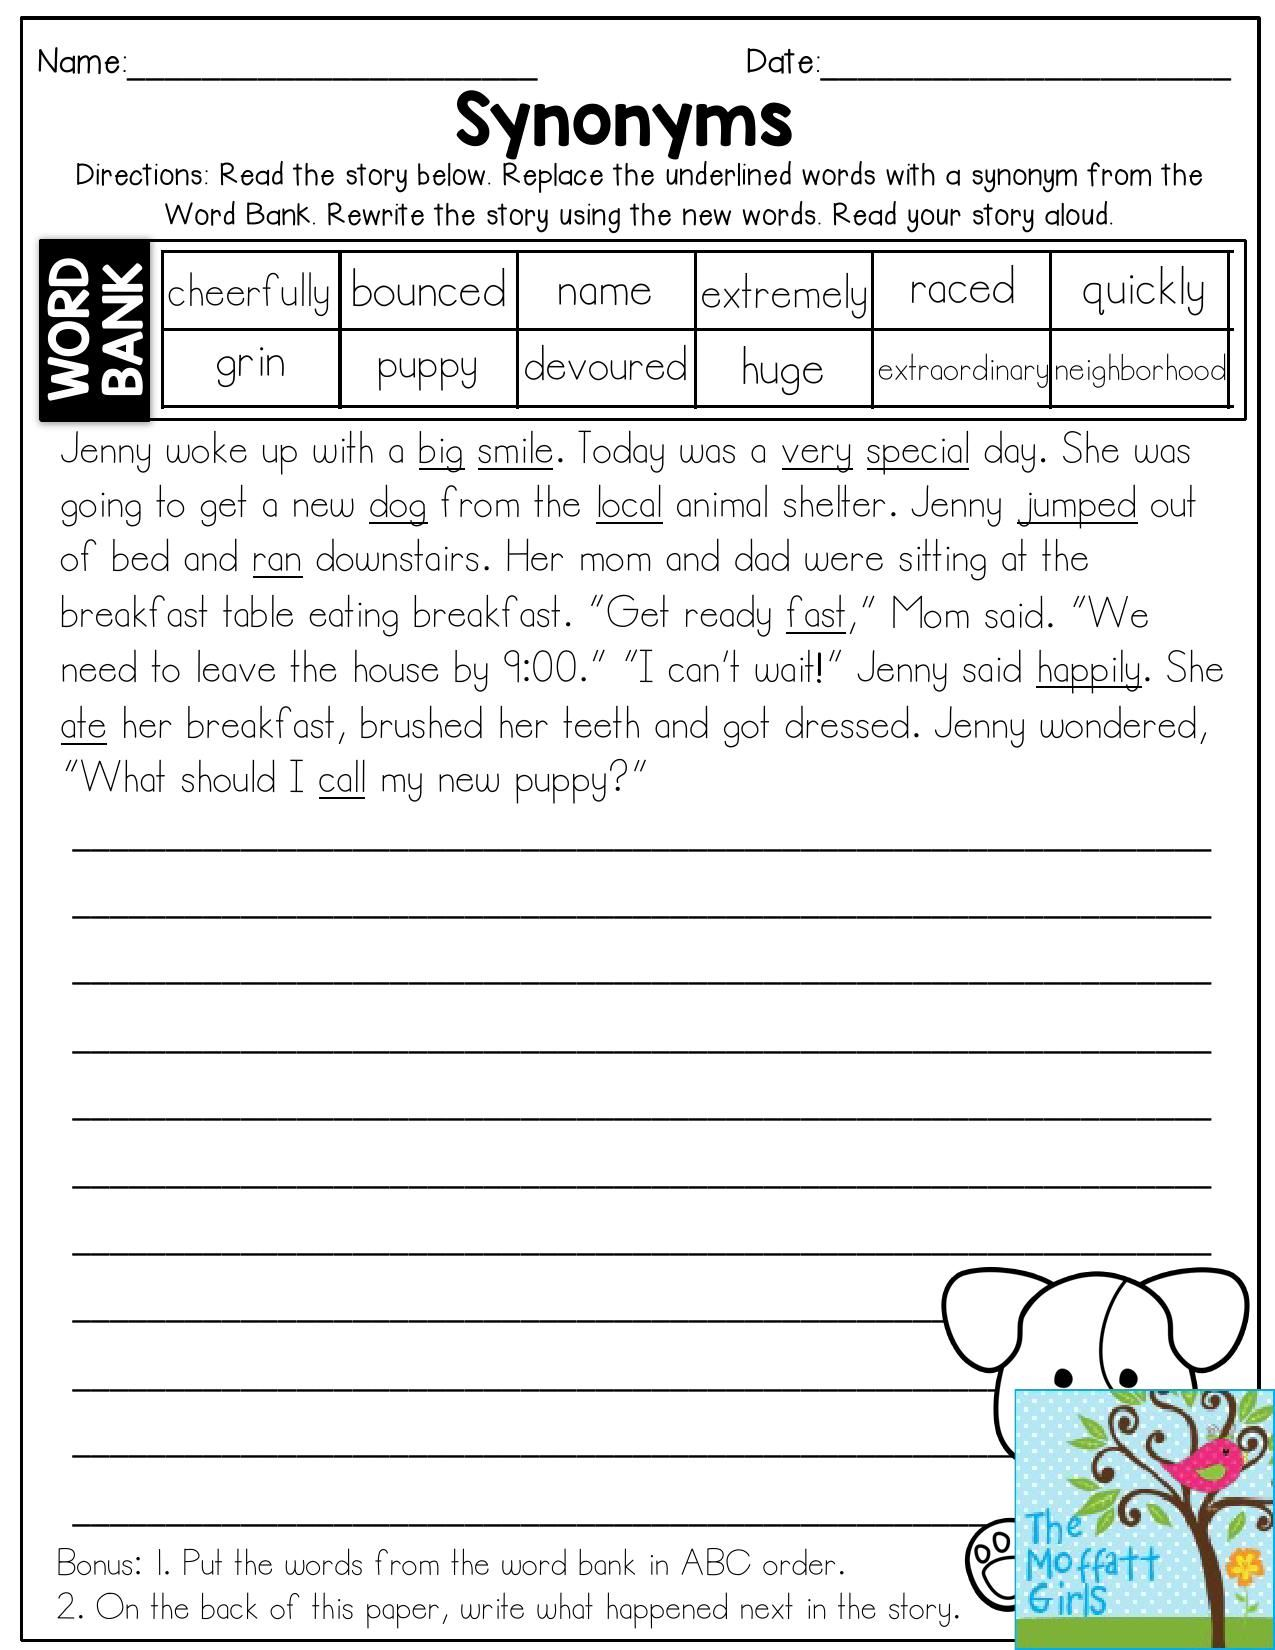 Worksheets Synonyms Antonyms List synonyms read the story and replace underlined words with then rewrite antonyms listantonyms